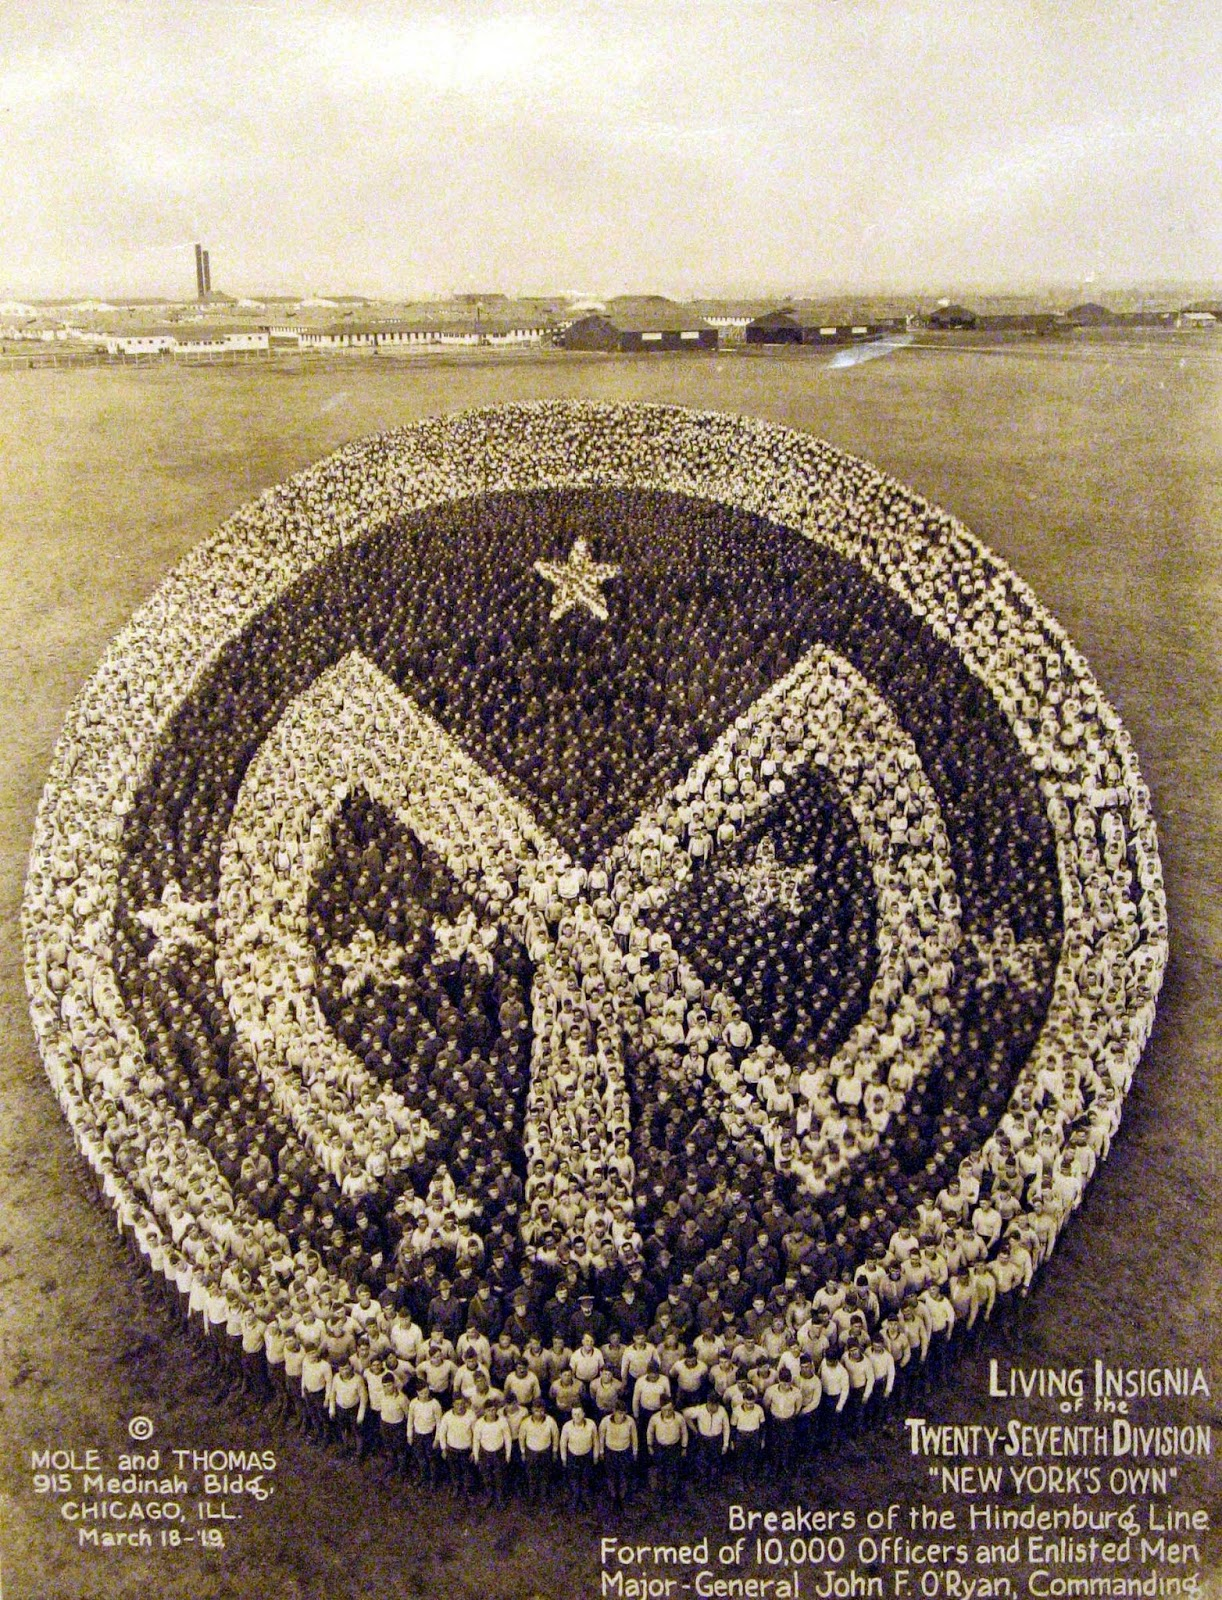 Living Insignia of the 27th Division, 1919, 10,000 officers and men